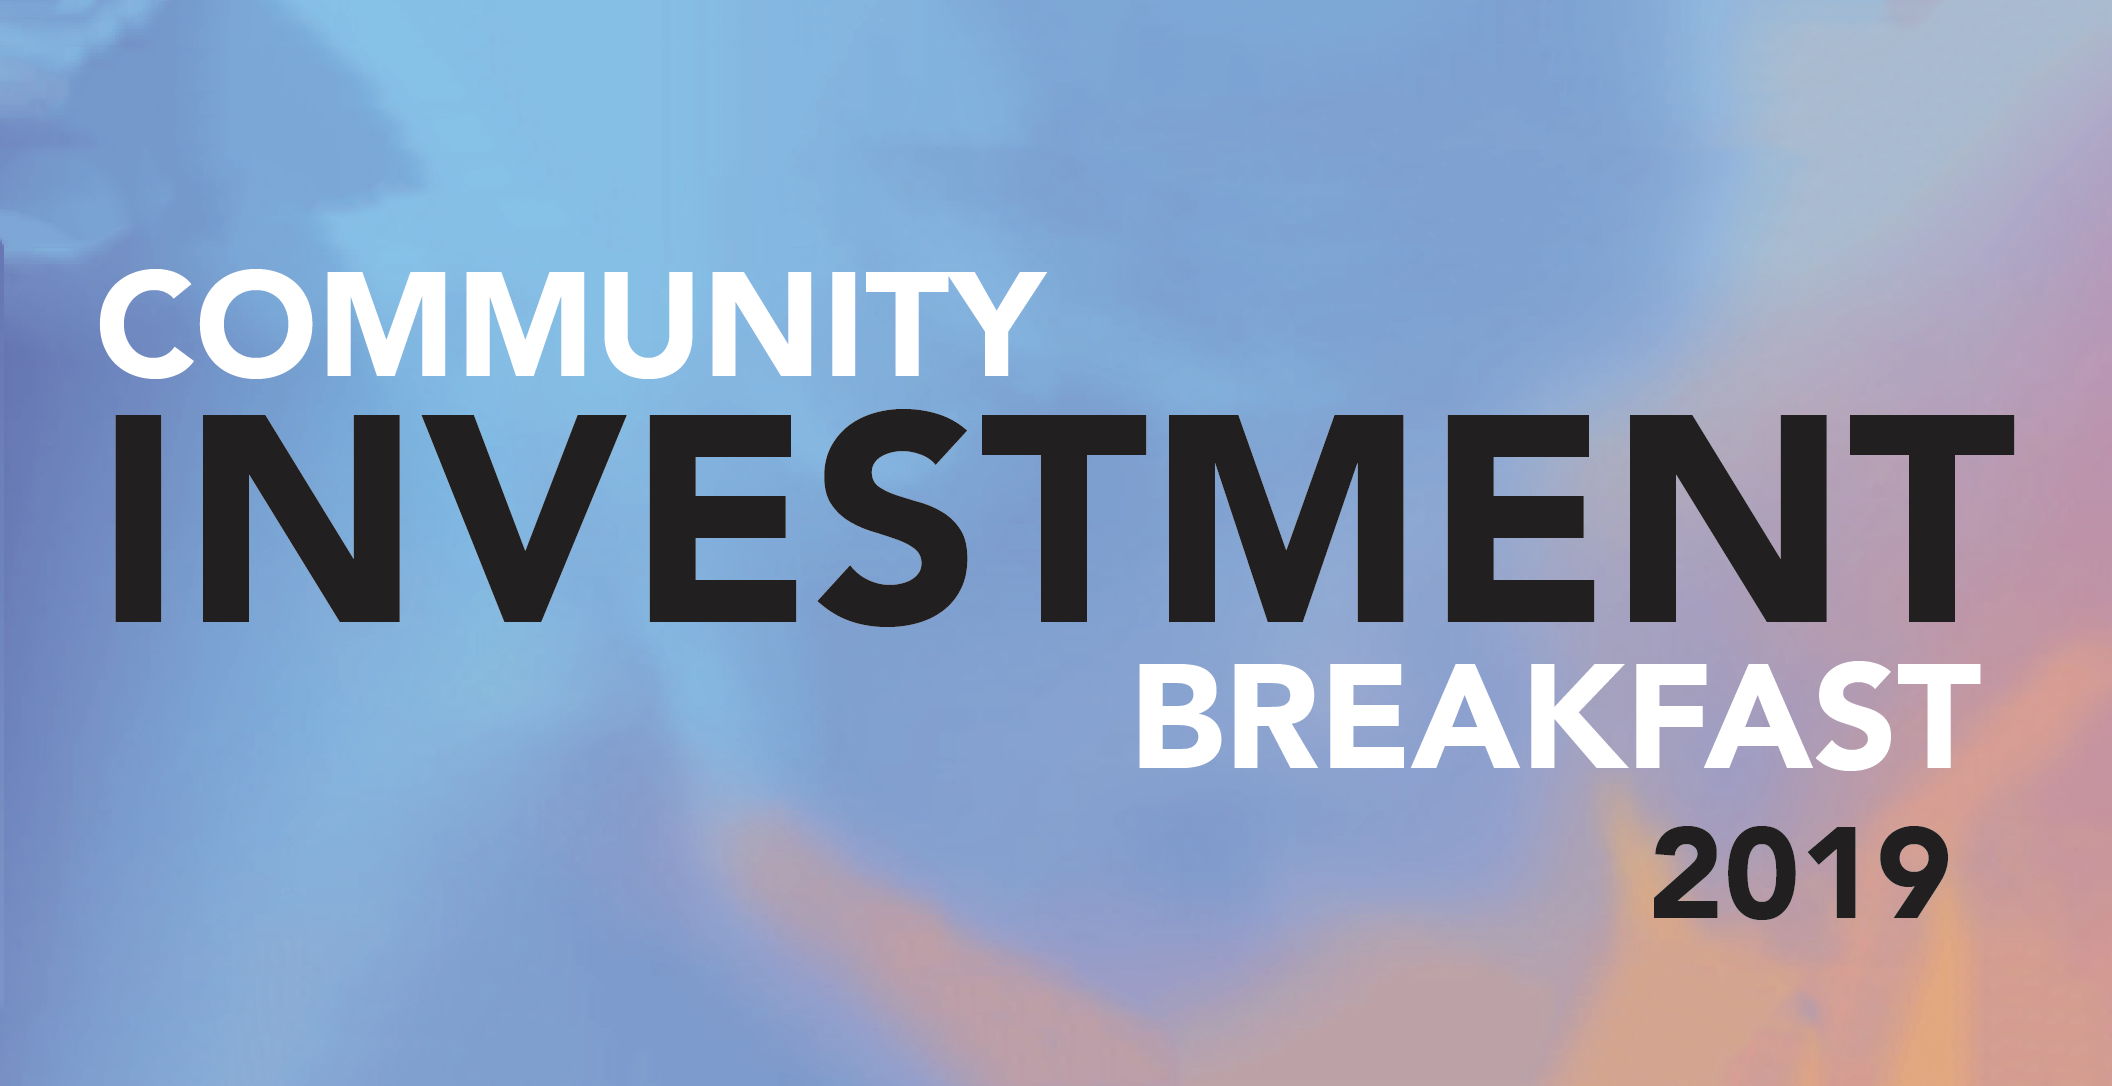 Community Investment Breakfast